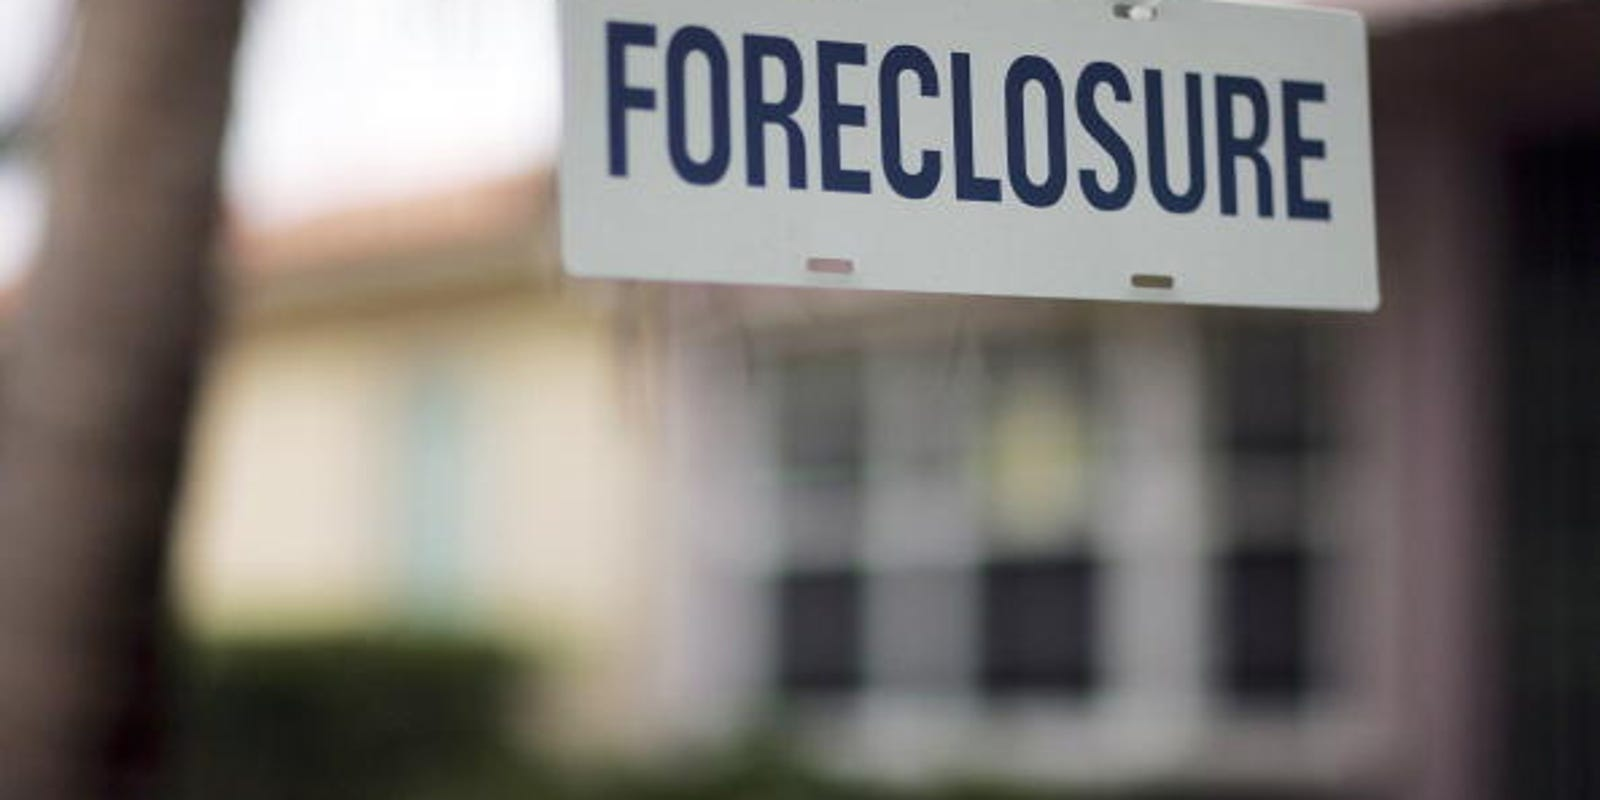 Delaware sees highest foreclosure rate in U.S. this year, data analysis company finds